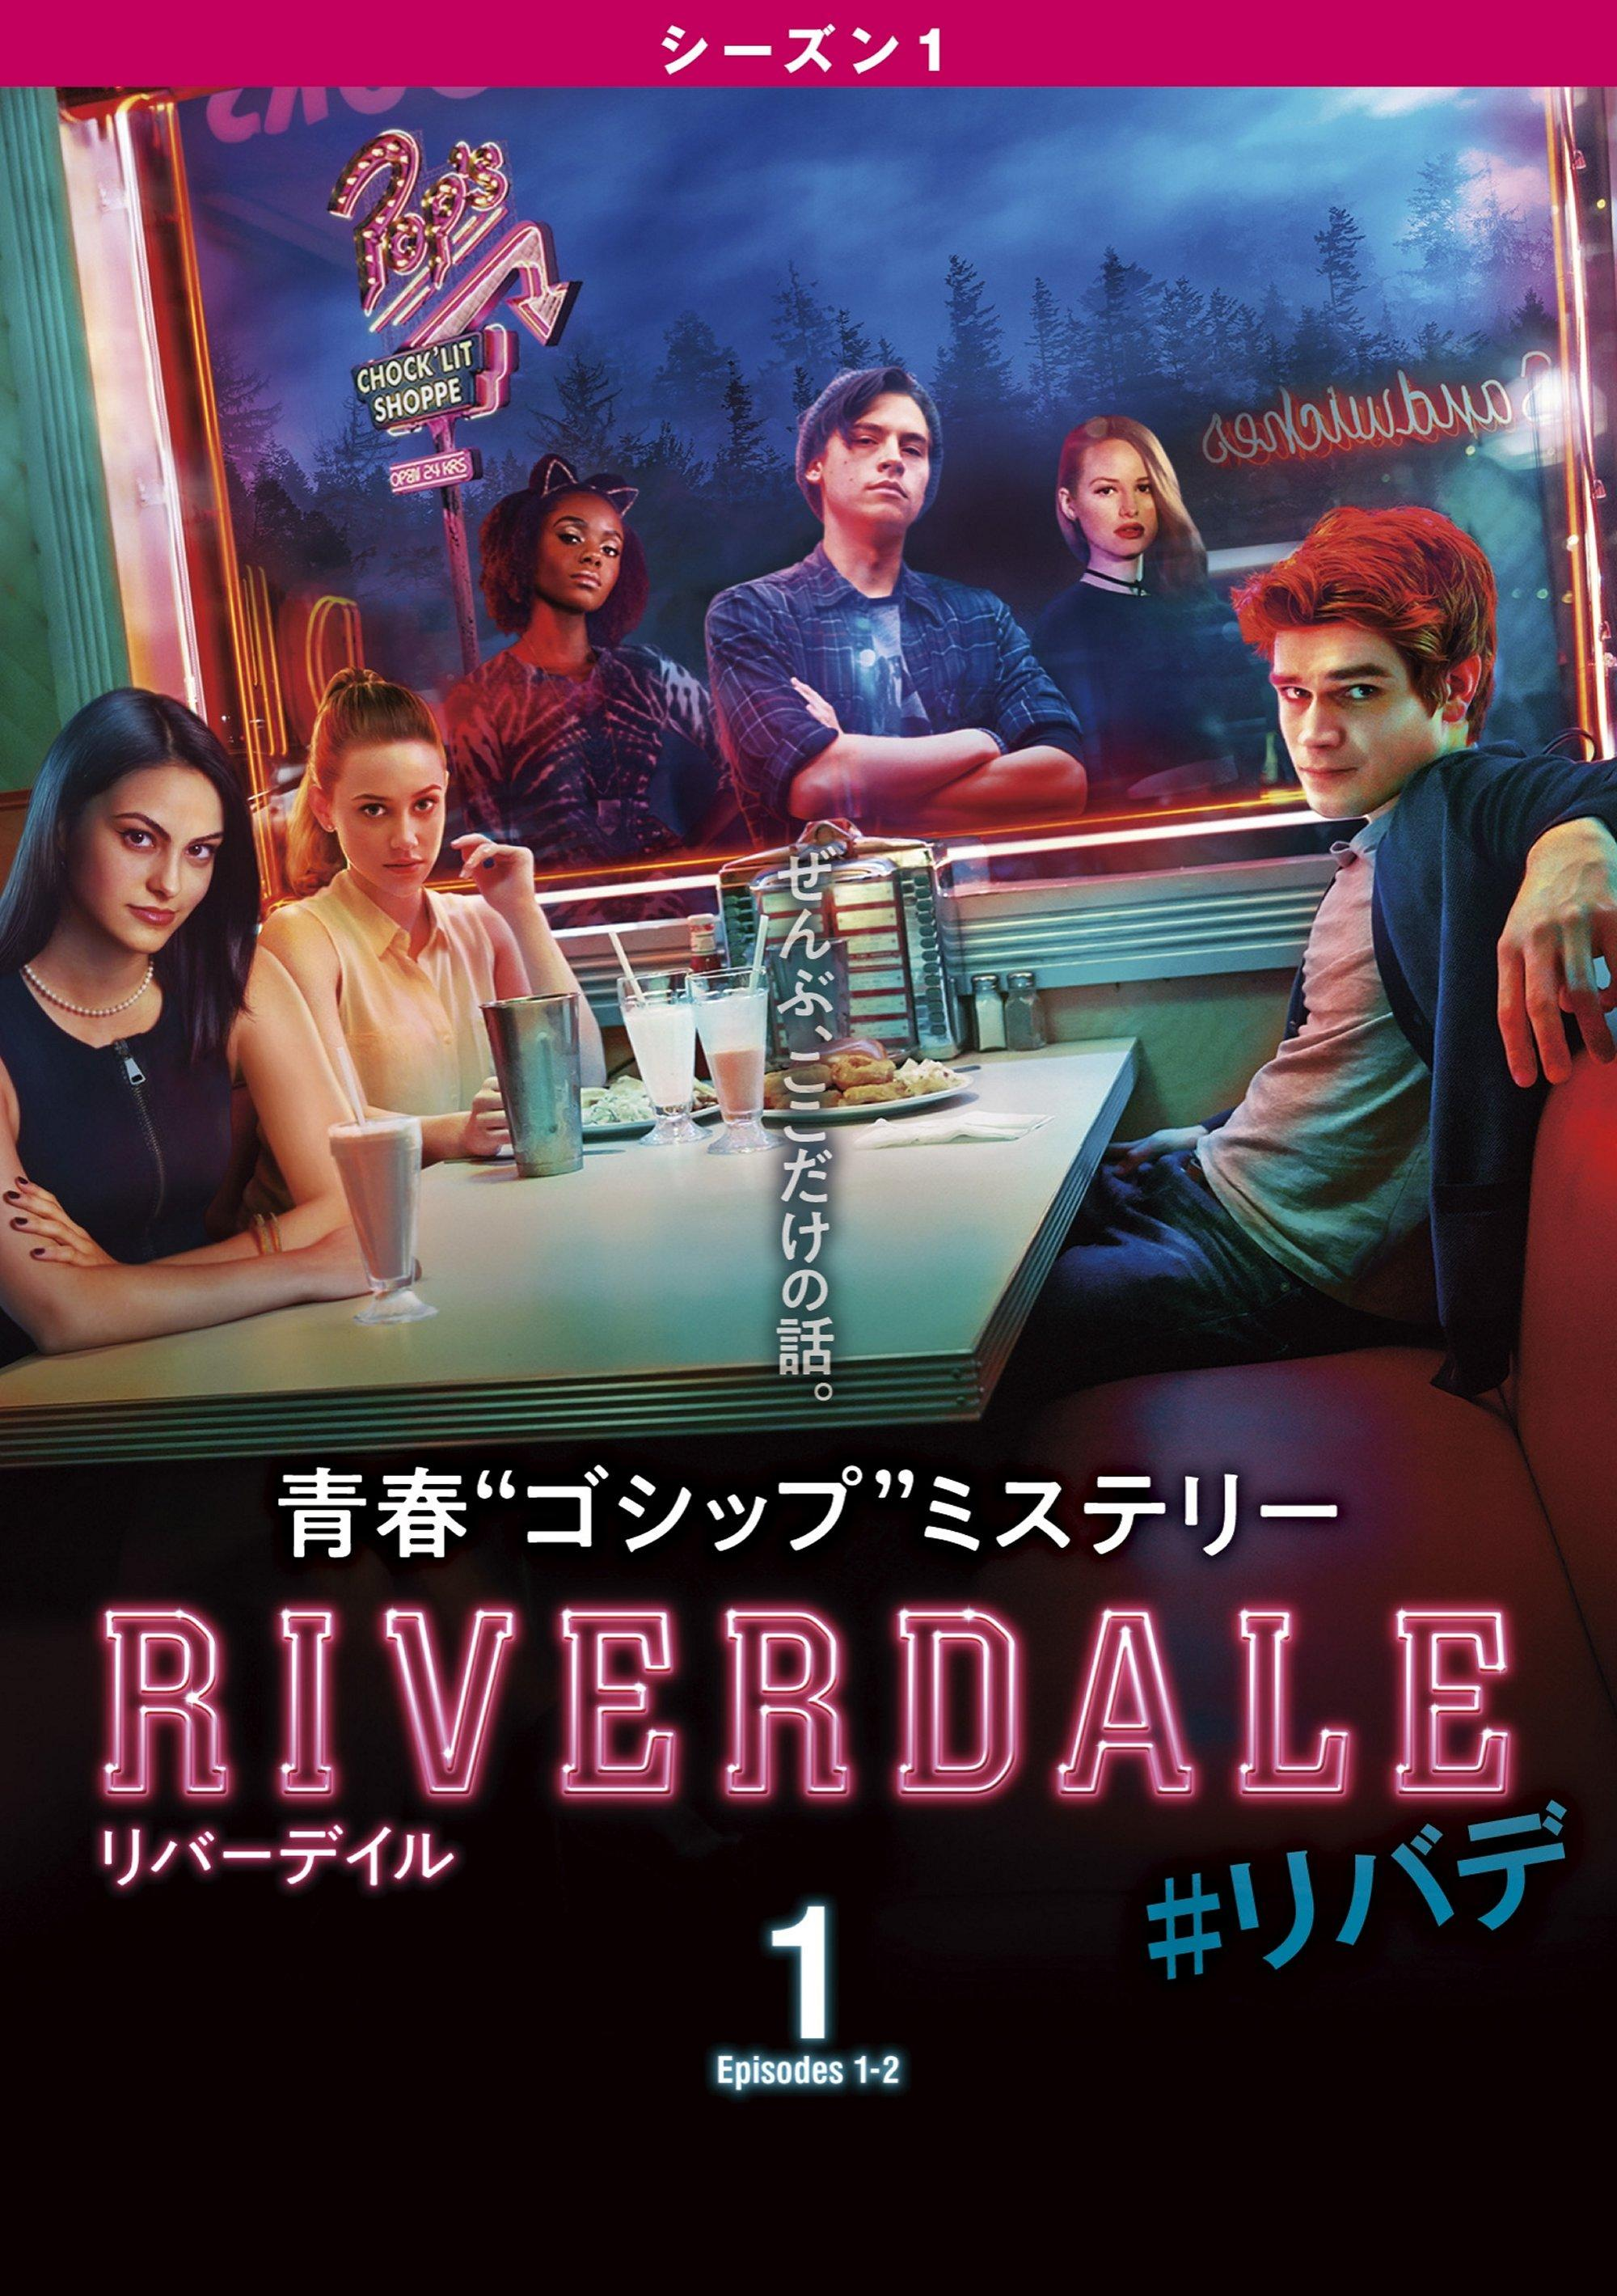 20180816_riverdale_jacket.jpeg